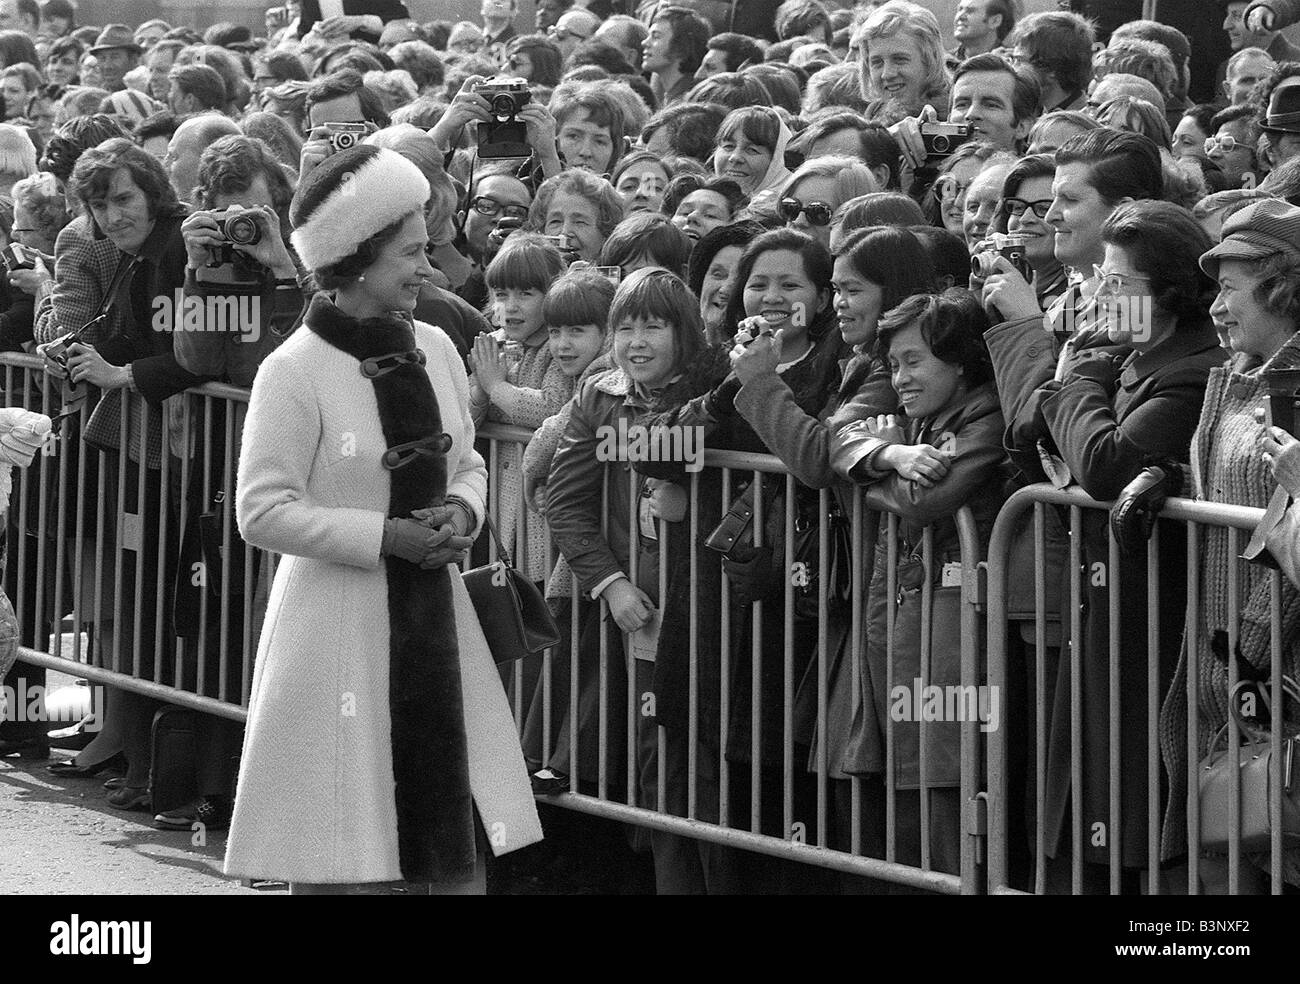 Queen Elizabeth II March 1973 Opens new London Bridge Here the Queen meets her subjects on a walkabout - Stock Image